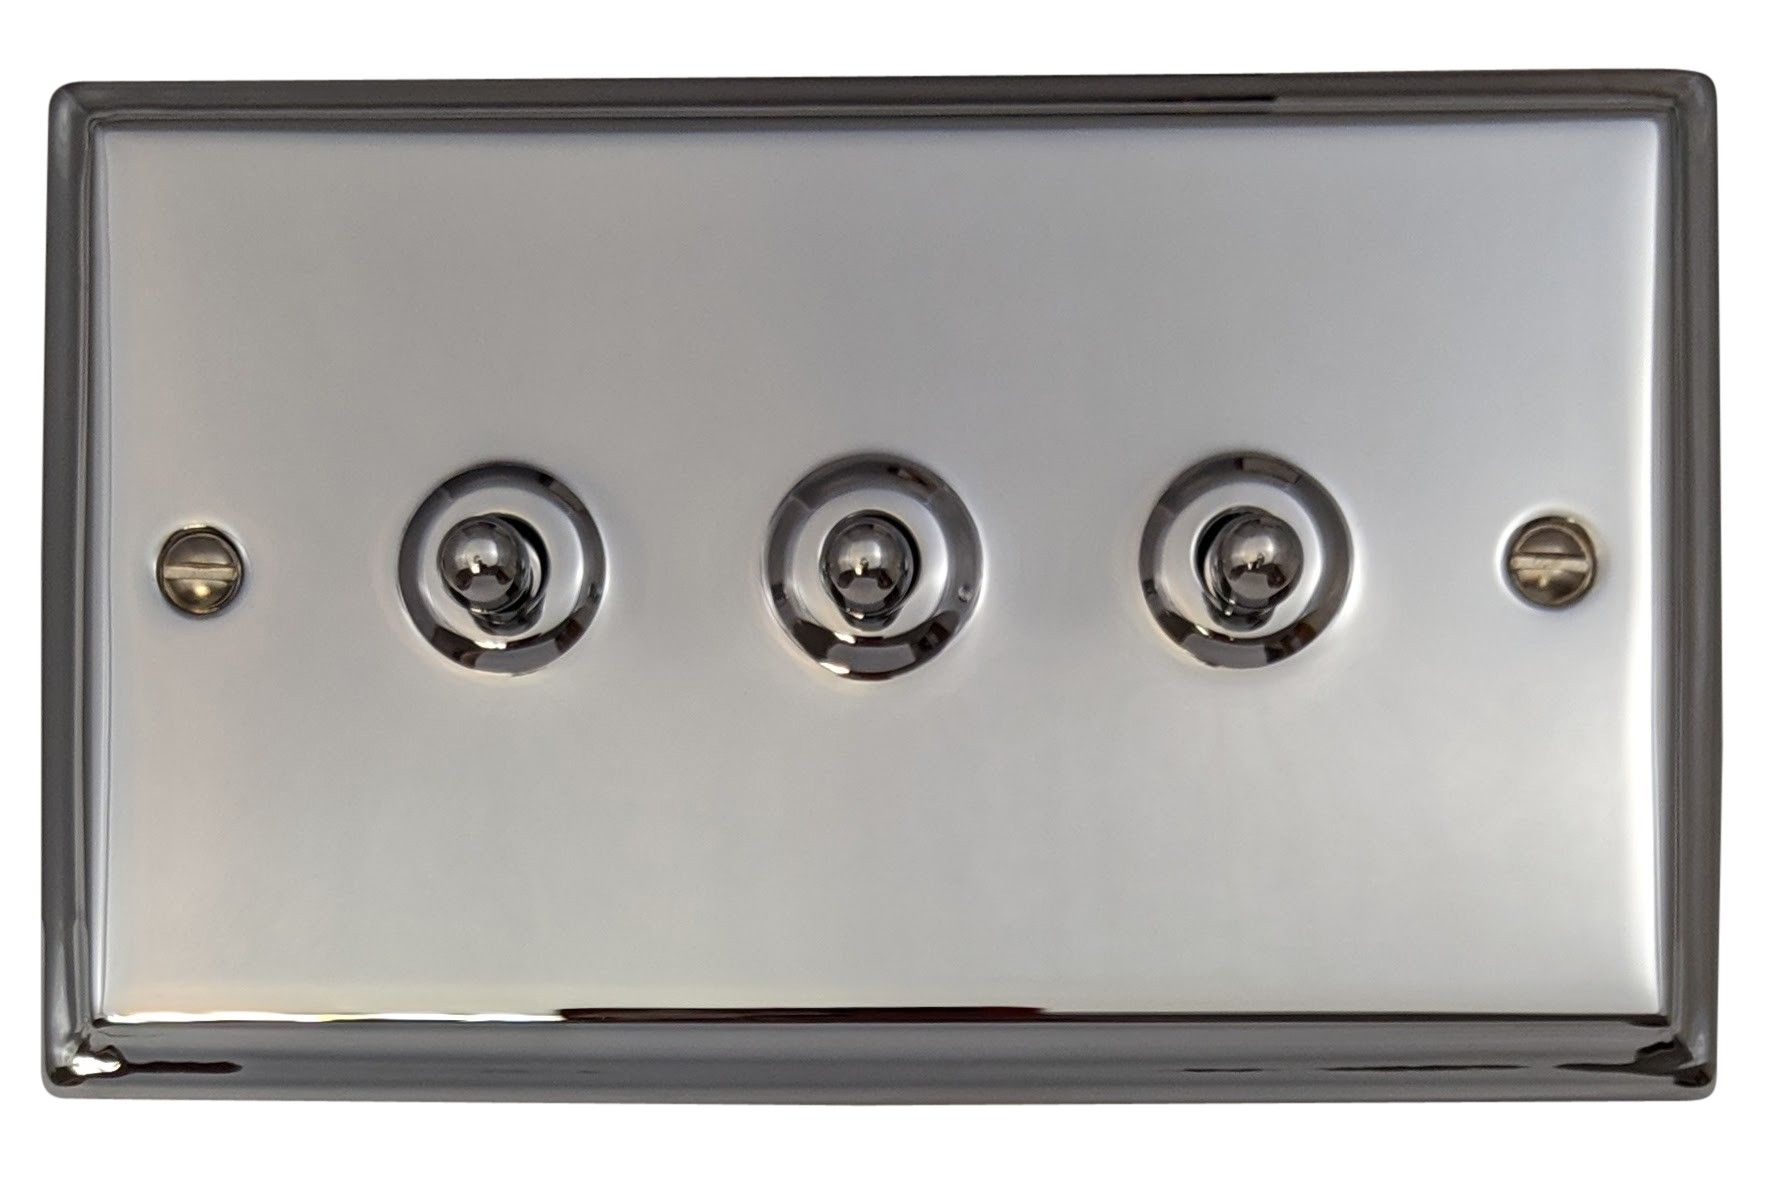 G&H DC283 Deco Plate Polished Chrome 3 Gang 1 or 2 Way Toggle Light Switch